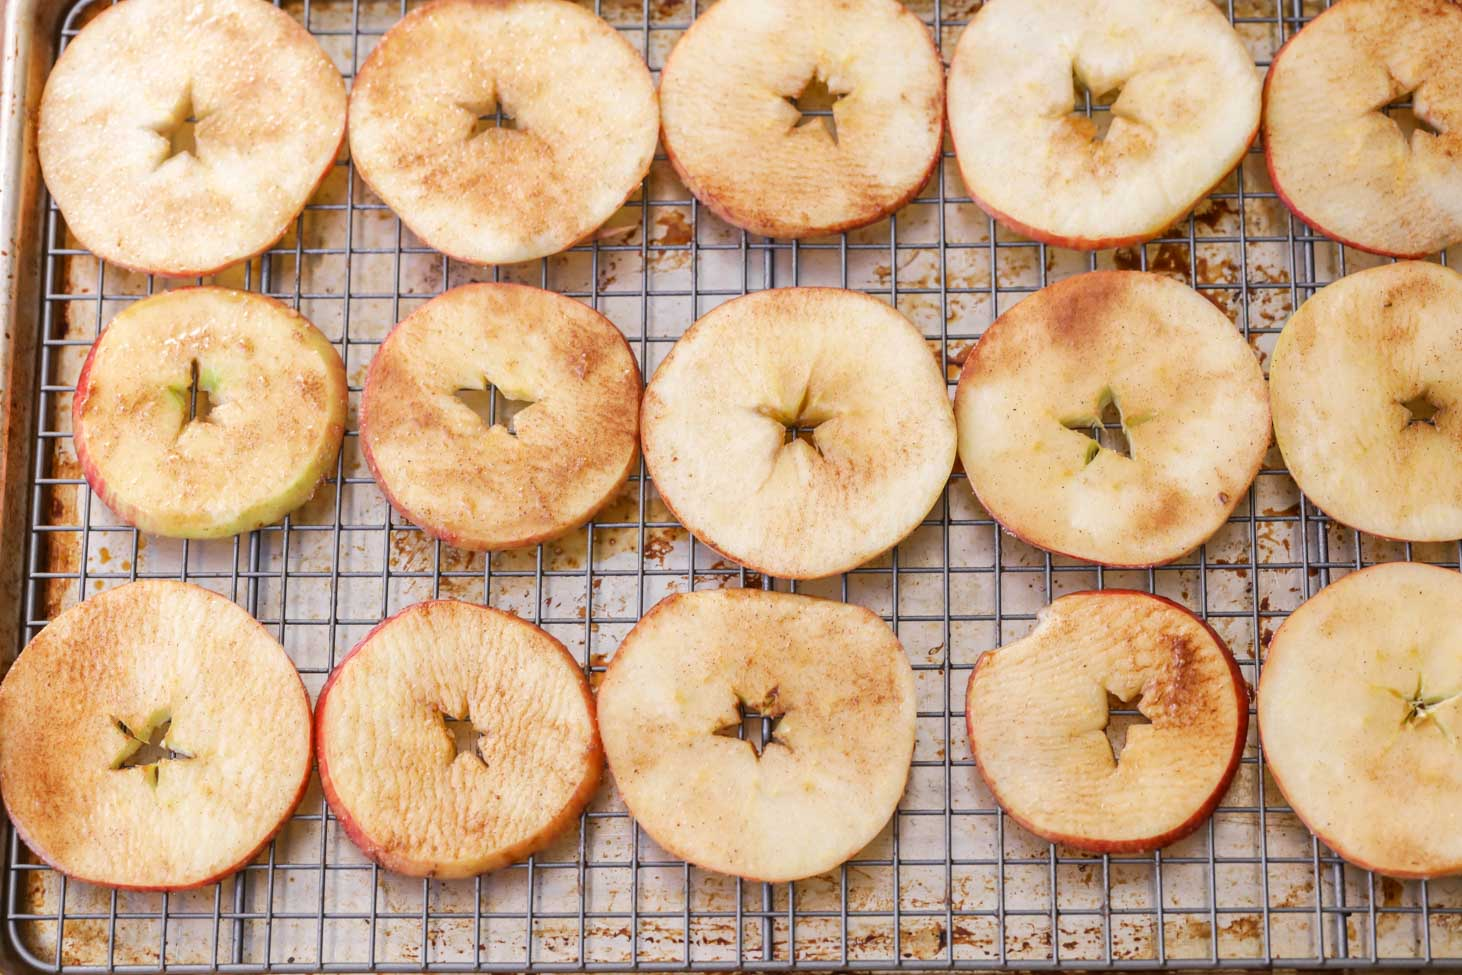 How to Make Apple Chips - lined on rack over cookie sheet